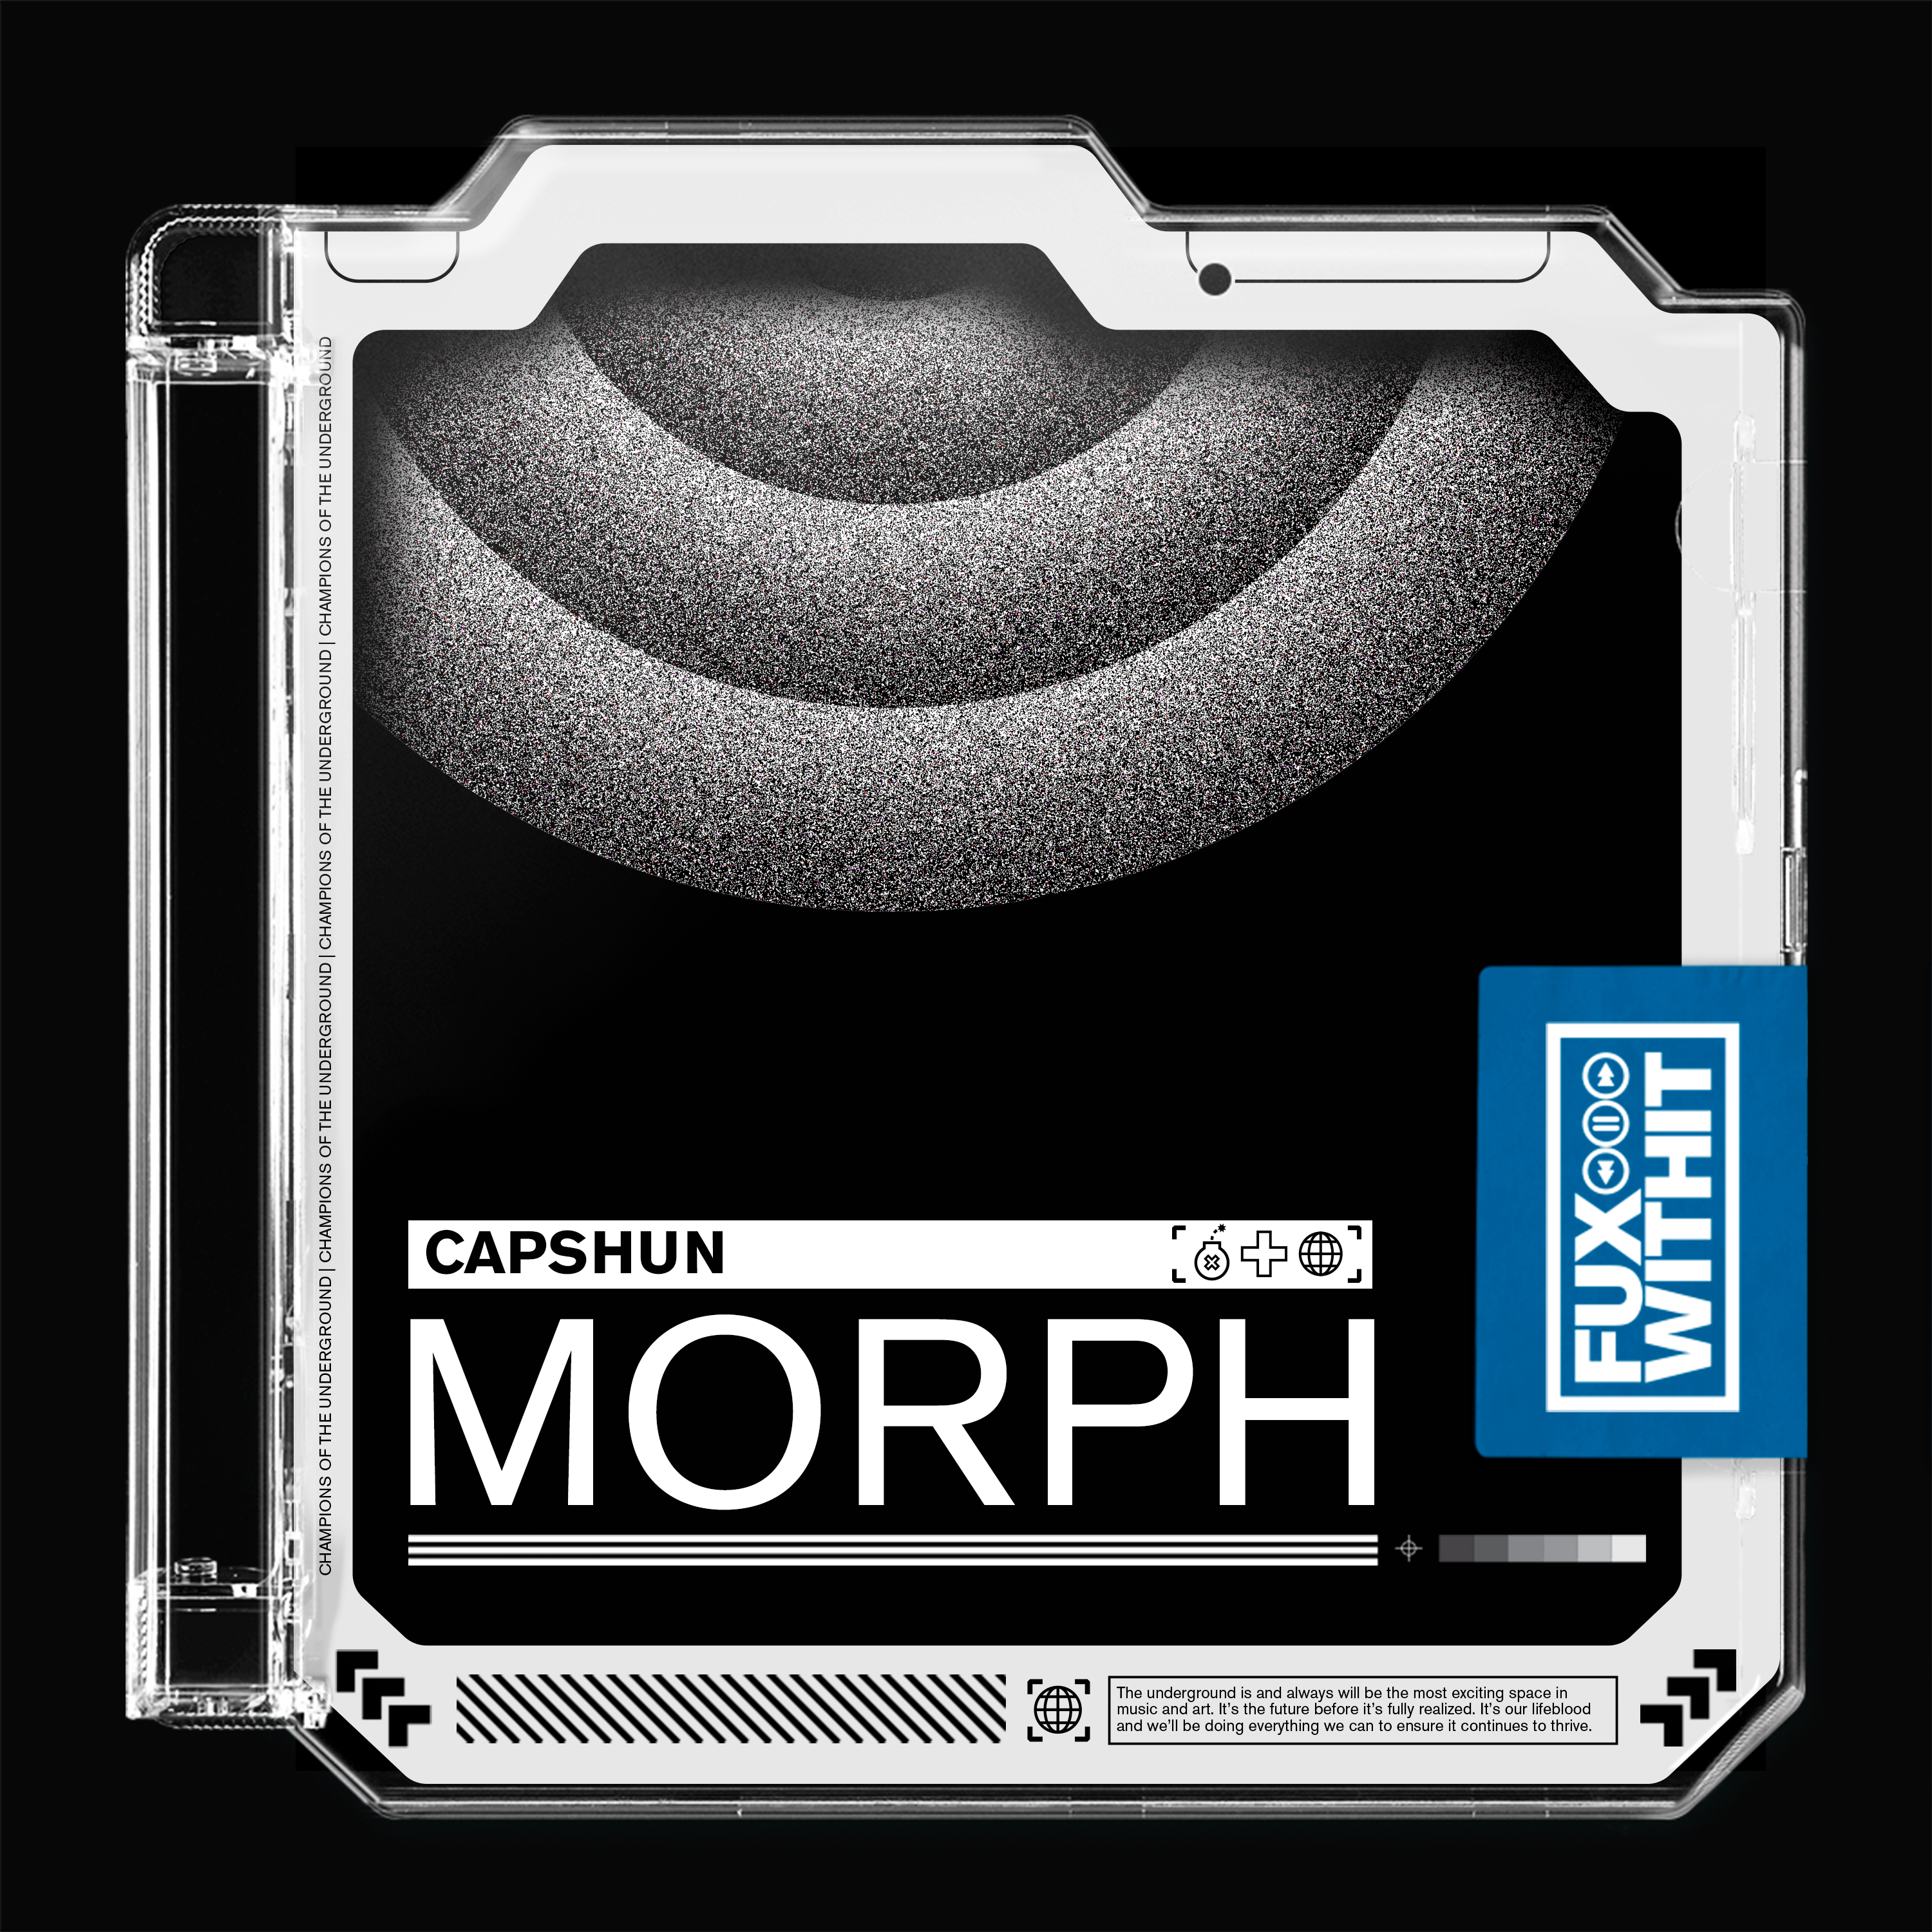 """capshun Debuts """"Morph"""", Kicking Off FUXWITHIT's Record Label Launch"""